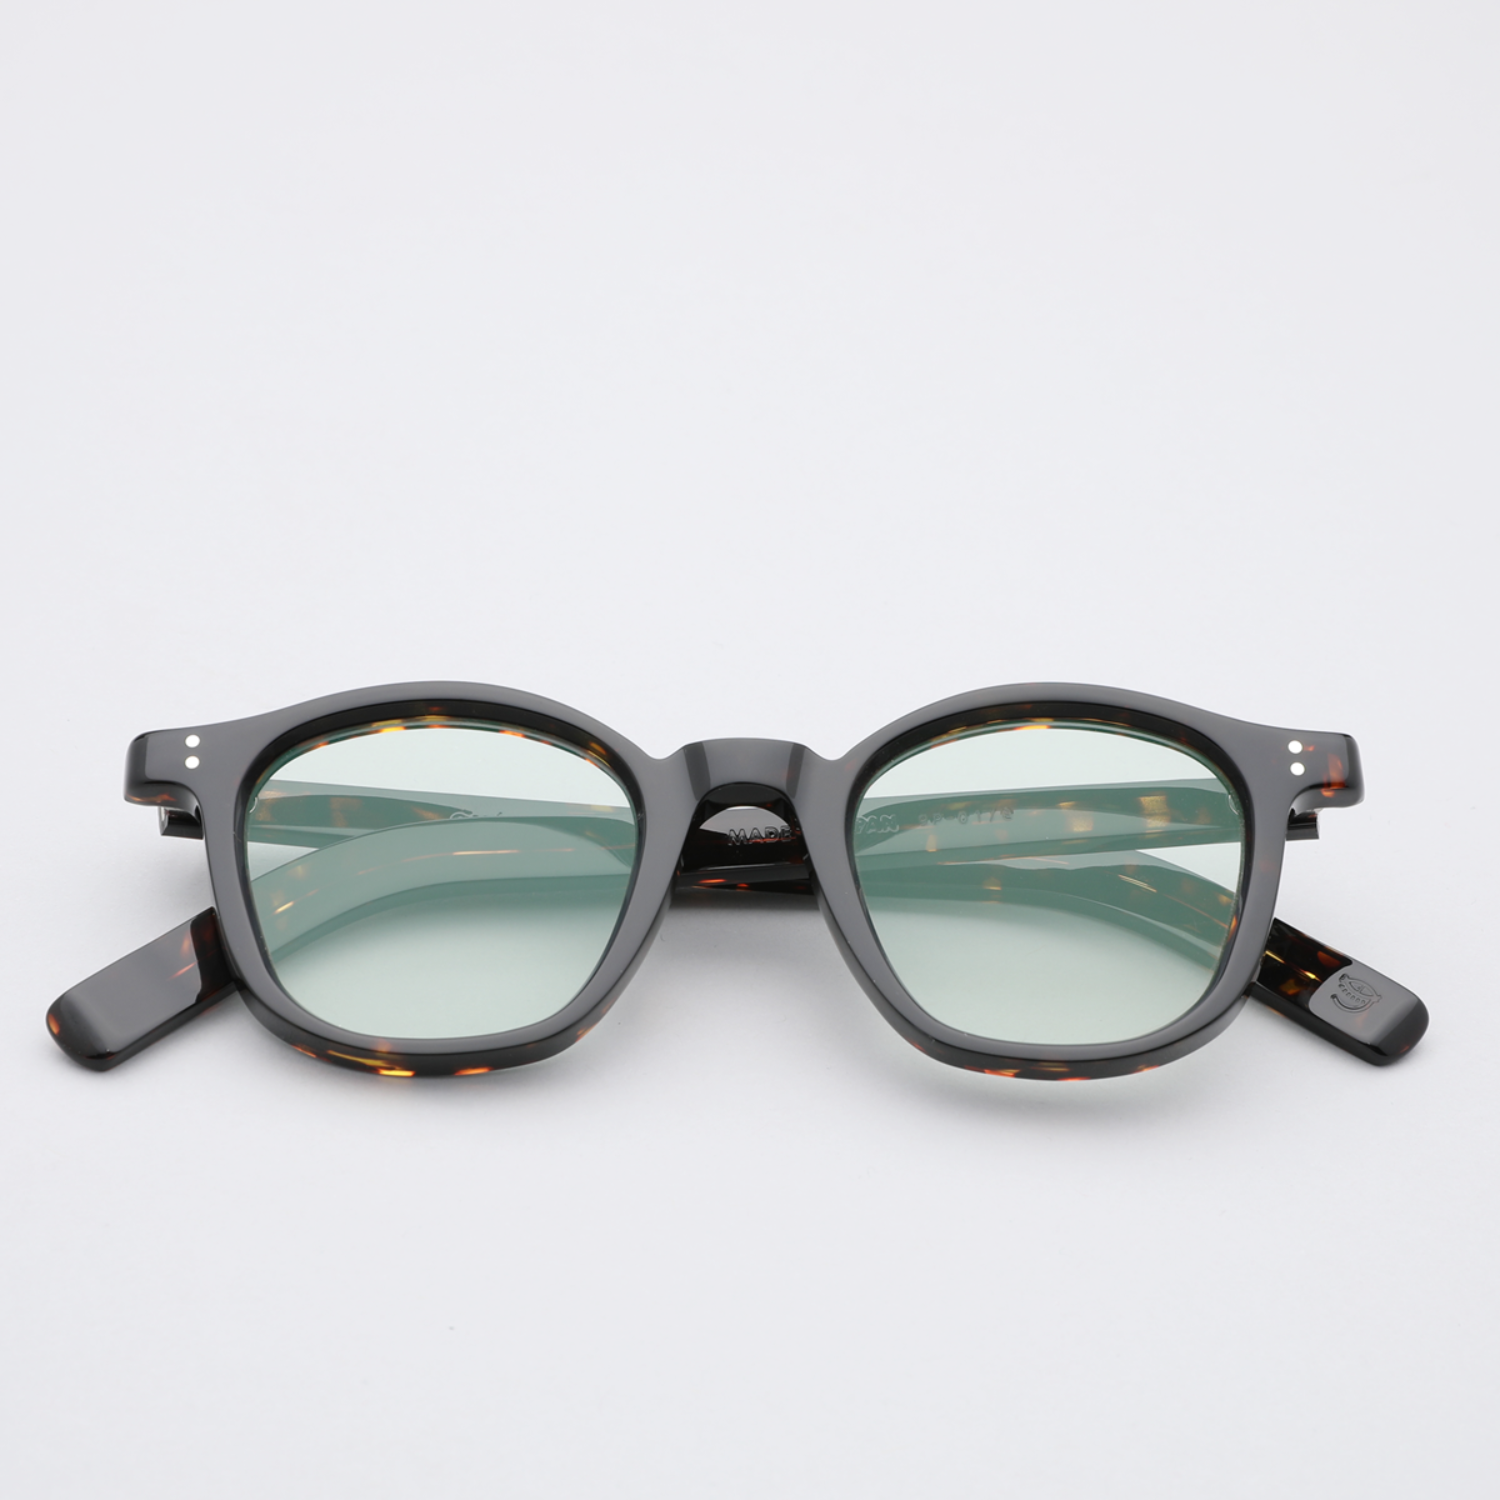 [규파드선글라스] GP01 E(Light green flat tint Lens) (guépard)